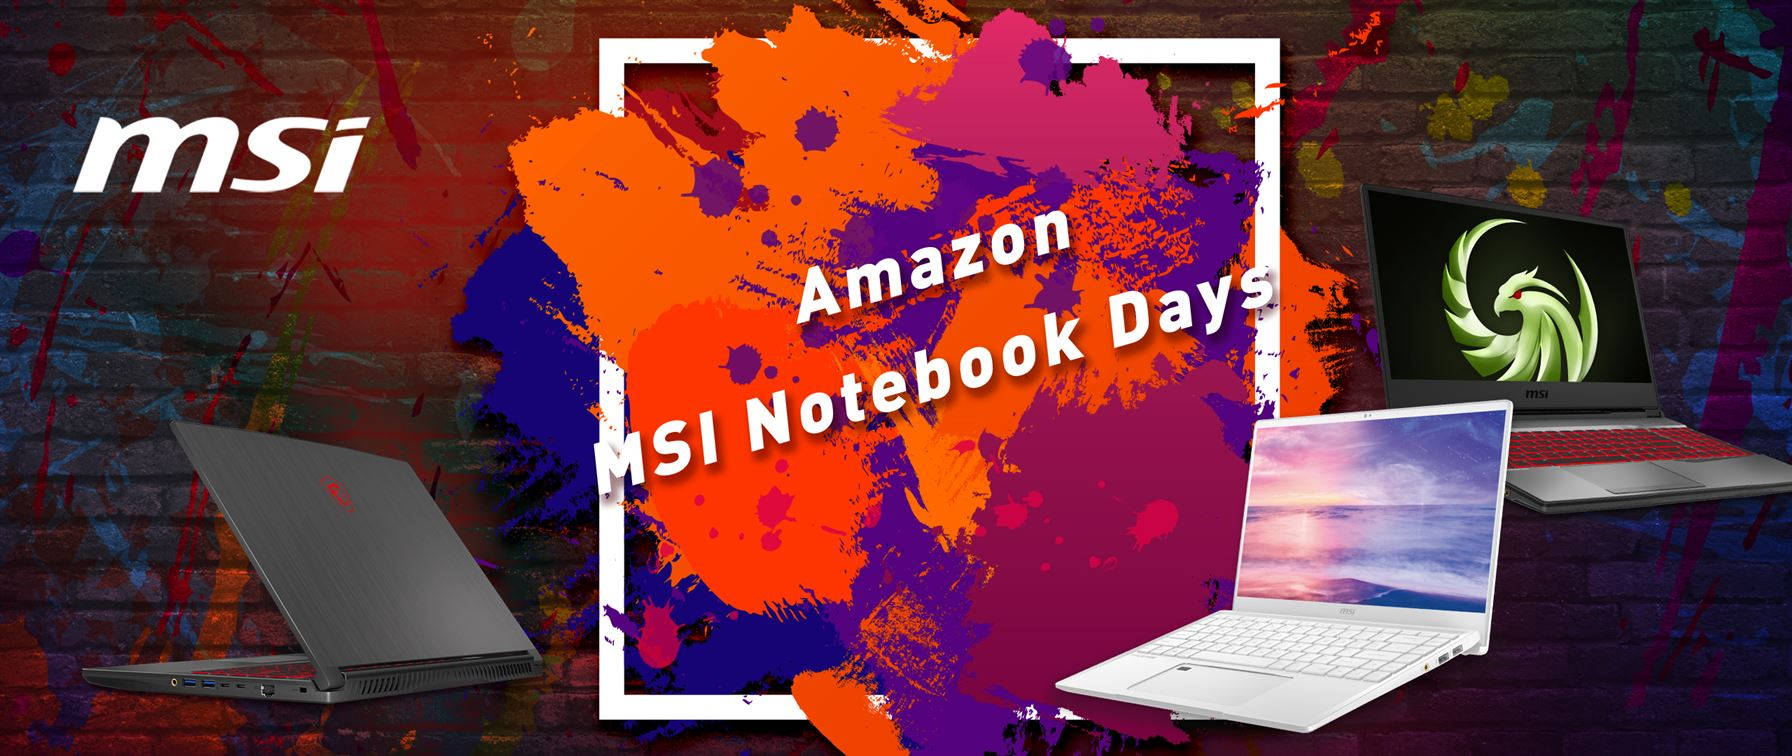 Al via oggi gli Amazon MSI Notebook Days